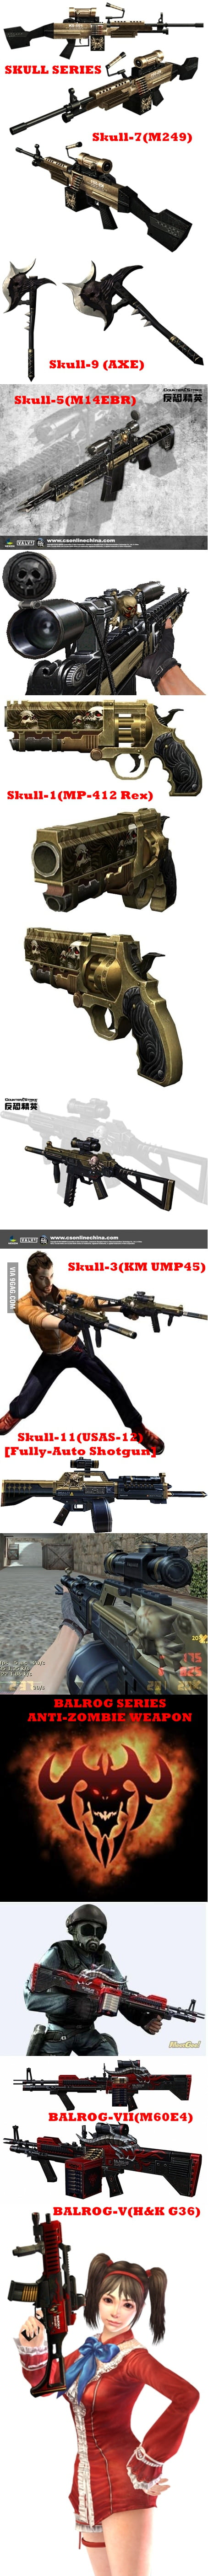 Anti-Zombie Weapon in Counter-Strike Online